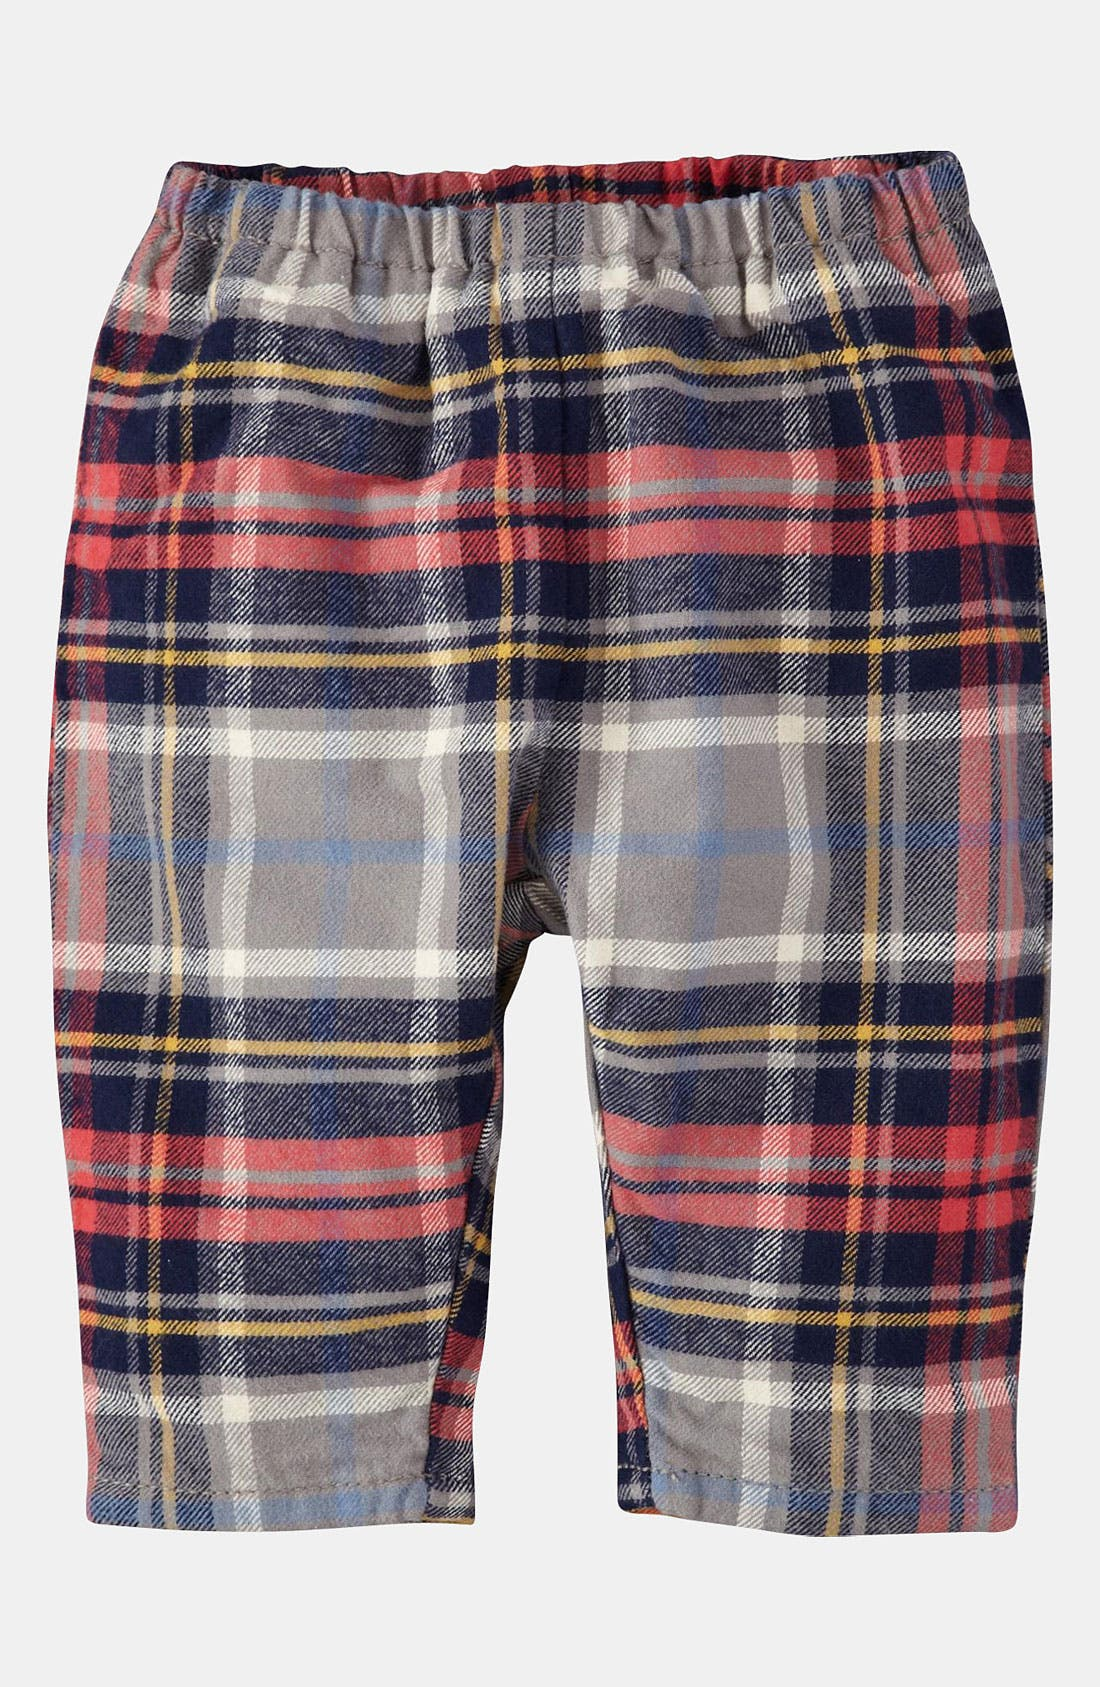 Alternate Image 1 Selected - Mini Boden Lined Pants (Infant)